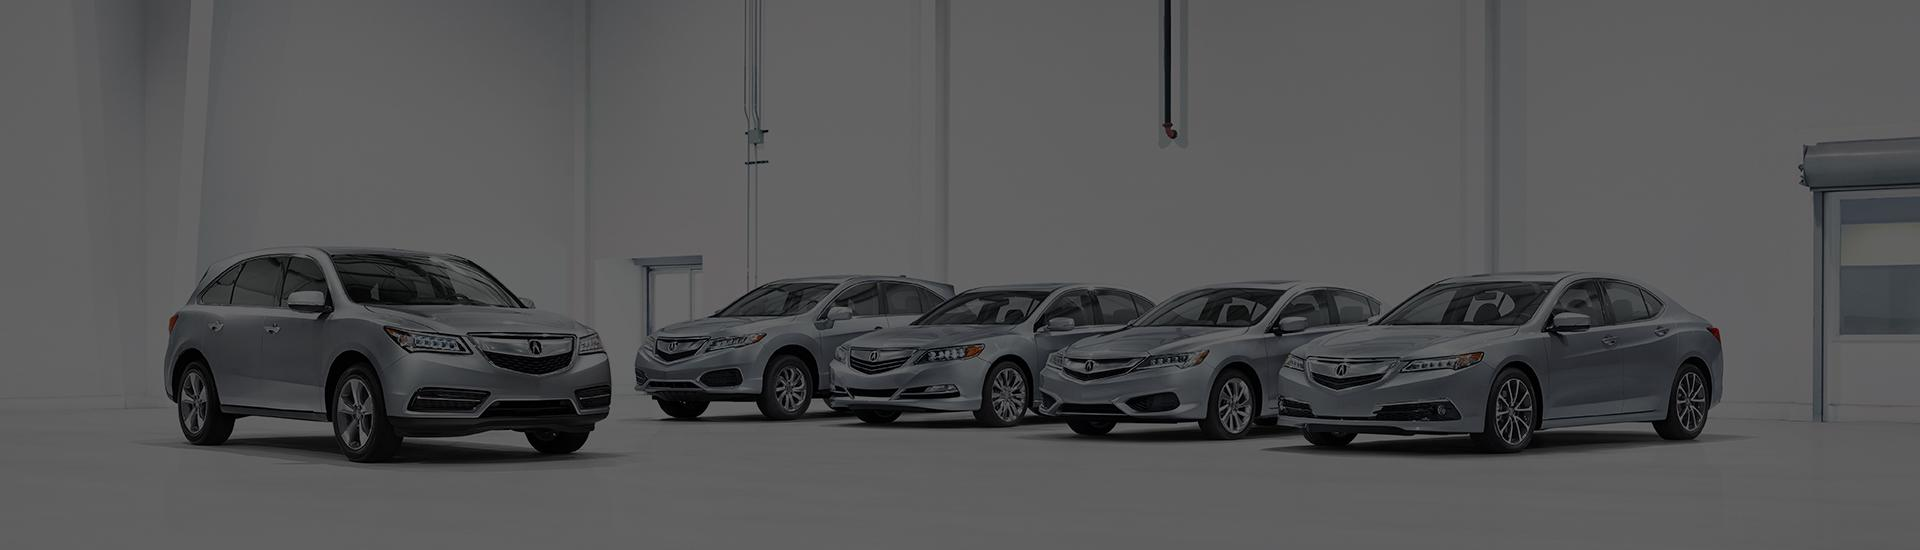 Used Acura vehicle for sale at Spitzer Acura in McMurray PA.